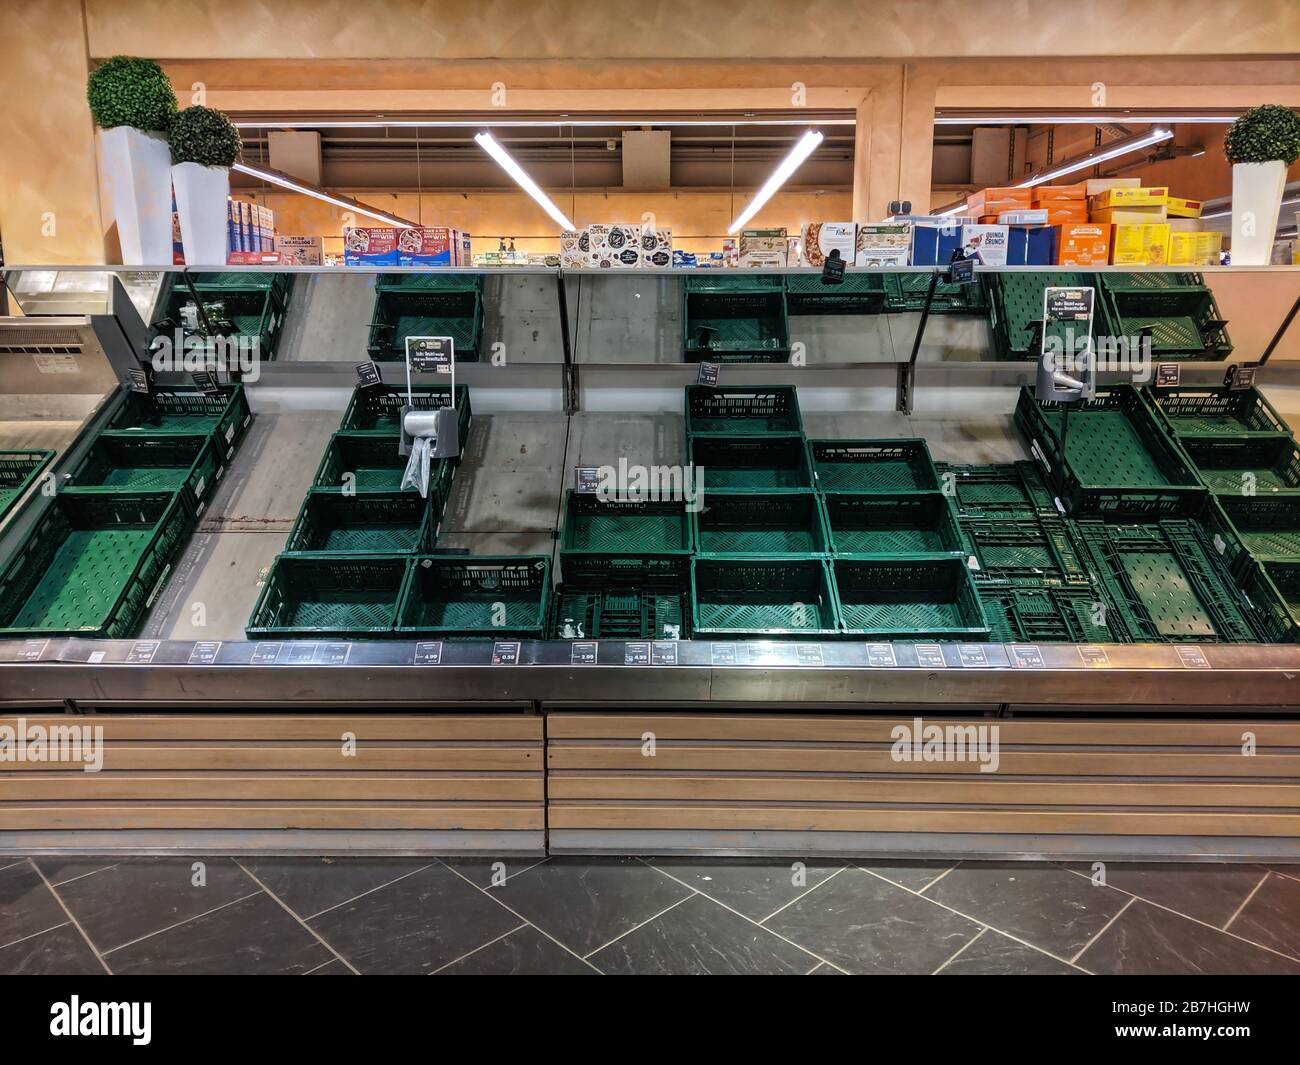 Munich, Bavaria, Germany. 14th Mar, 2020. An example of the empty vegetable shelves seen at supermarkets in Germany, where hoarders (Hamsterkäufer in German) have been panic shopping due to the spread of Covid-19. Critics state that Germany doesn't have supply issues, rather the hoarders are lacking solidarity and buying all the foodstuffs and home supplies, limiting access for normal shoppers and creating artificial shortages. Credit: Sachelle Babbar/ZUMA Wire/Alamy Live News Stock Photo